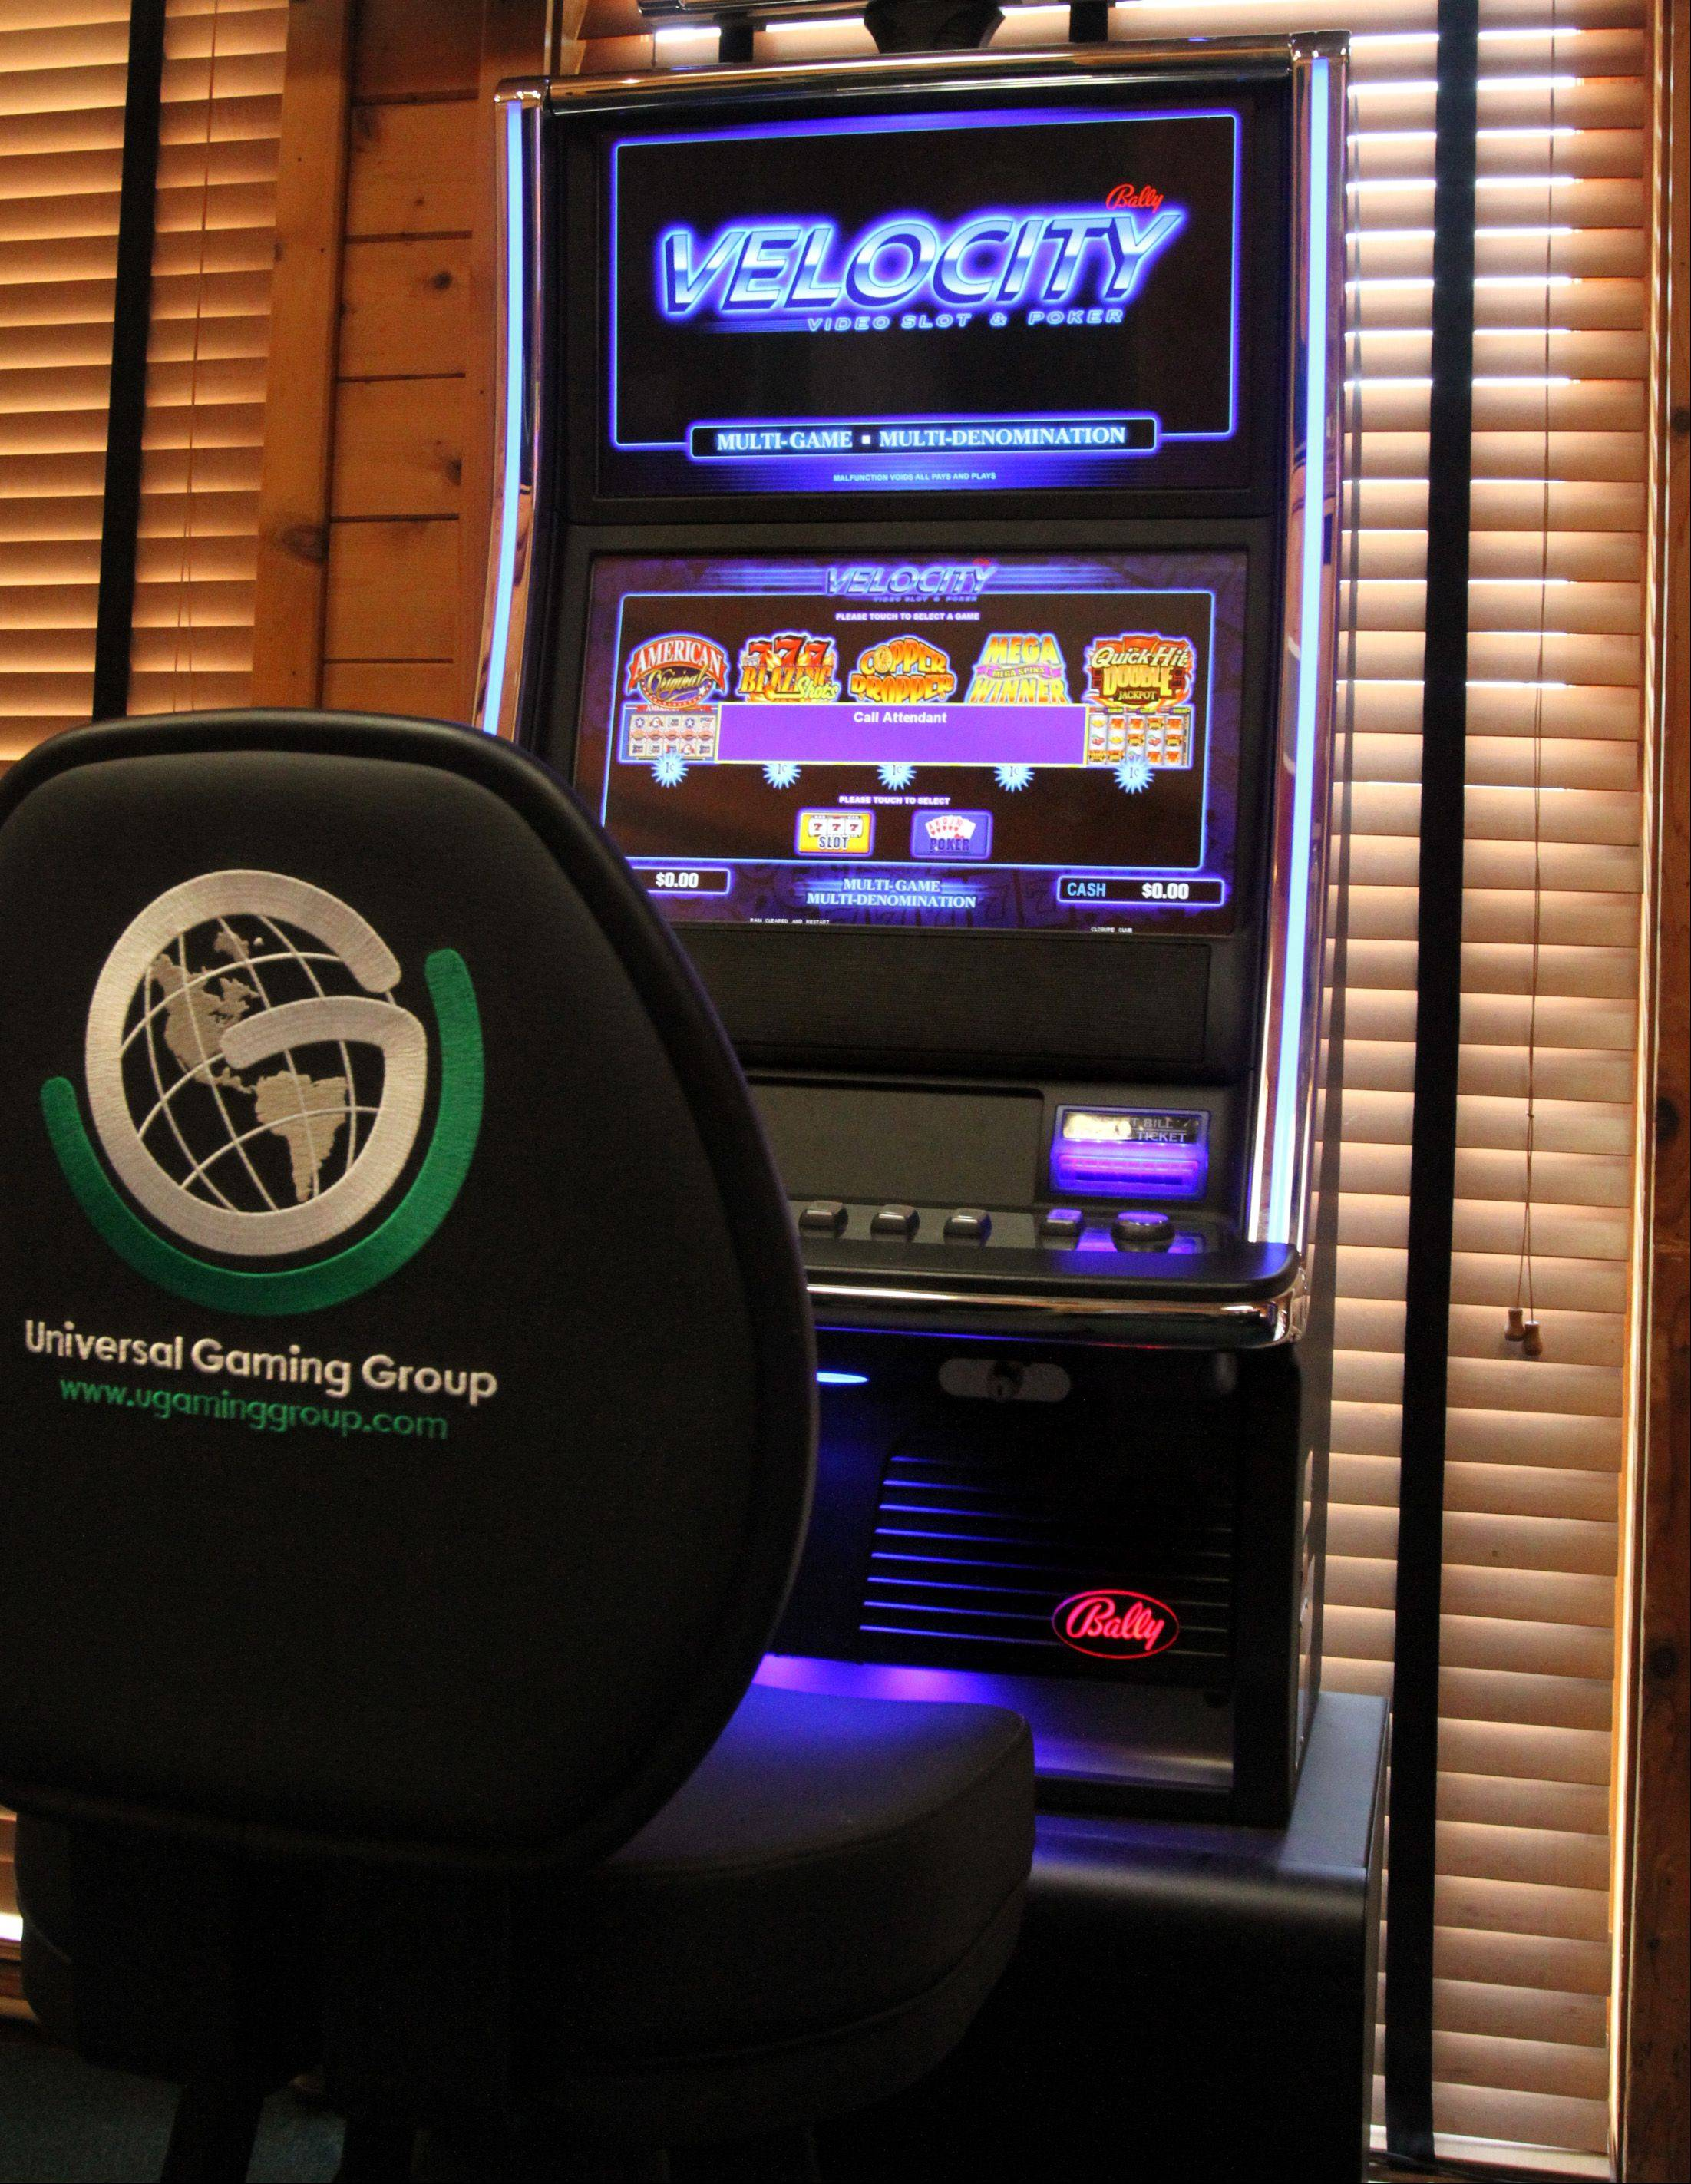 Elgin businesses and organizations are lobbying the city to allow video gambling. Pictured is a video poker machine at The Assembly in Hoffman Estates.